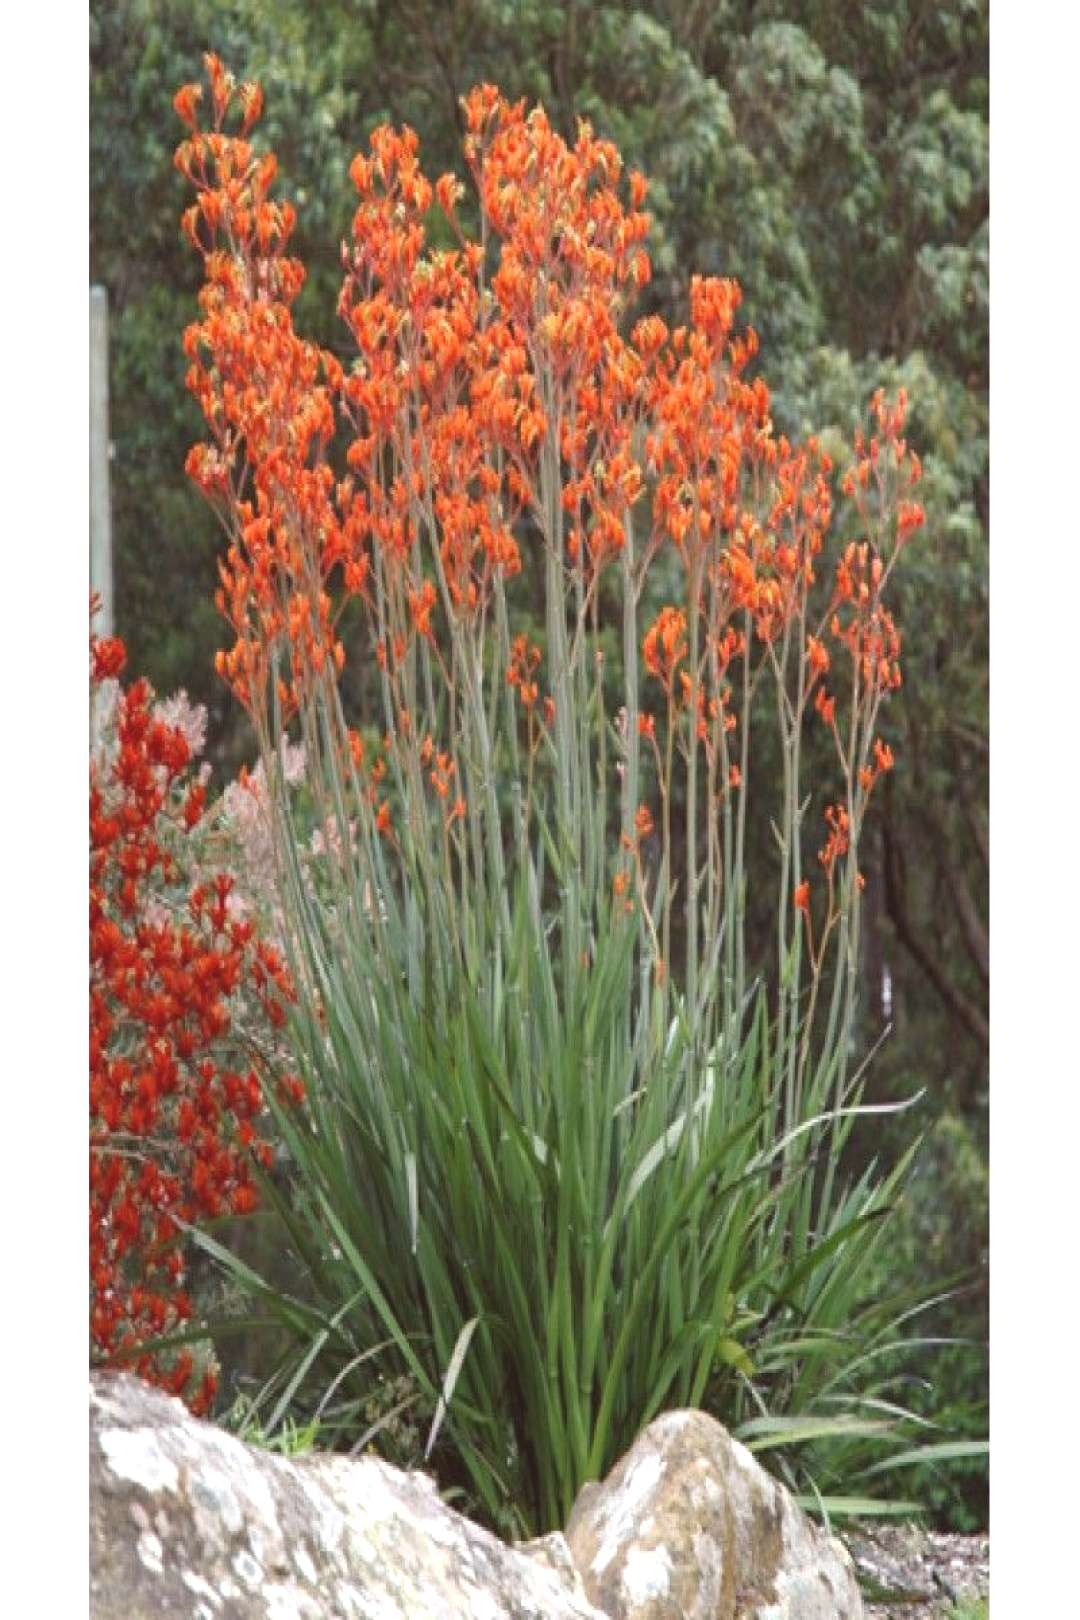 Colorful landscaping ideas with low maintenance flower bushes - Colorful landscaping with low-maint